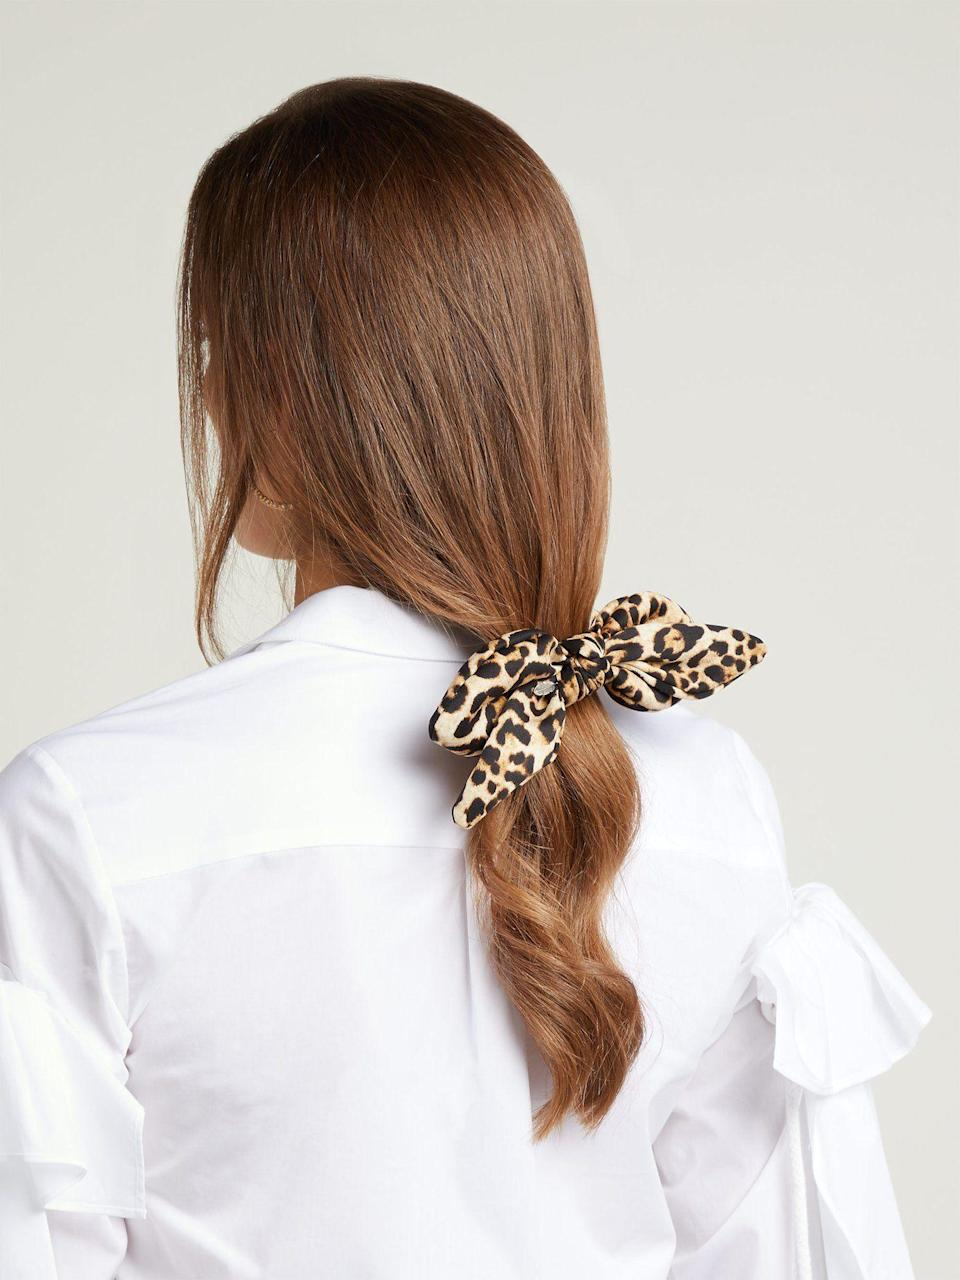 Haven't you heard? Hair accessories are back.